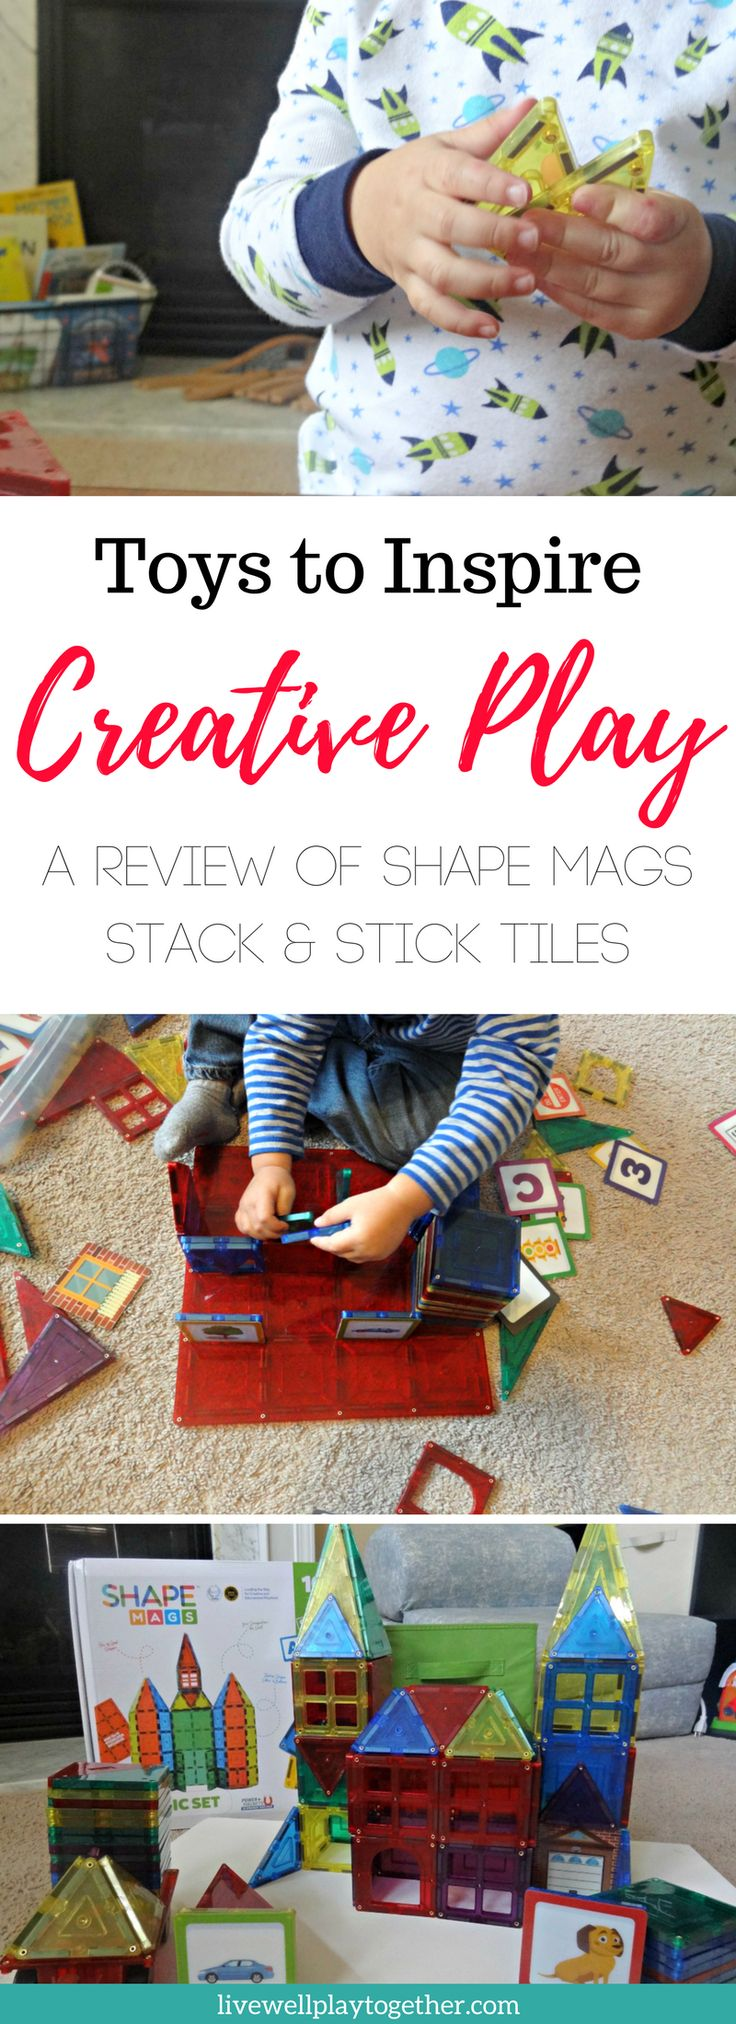 STEM Toys to Inspire Creative Play: Shape Mags Review  Best Toys for Toddlers | Educational Toys | STEM Toys | Magnetic Tiles | Preschool Toys | Gift Ideas for Toddlers | Gift Ideas for Preschoolers